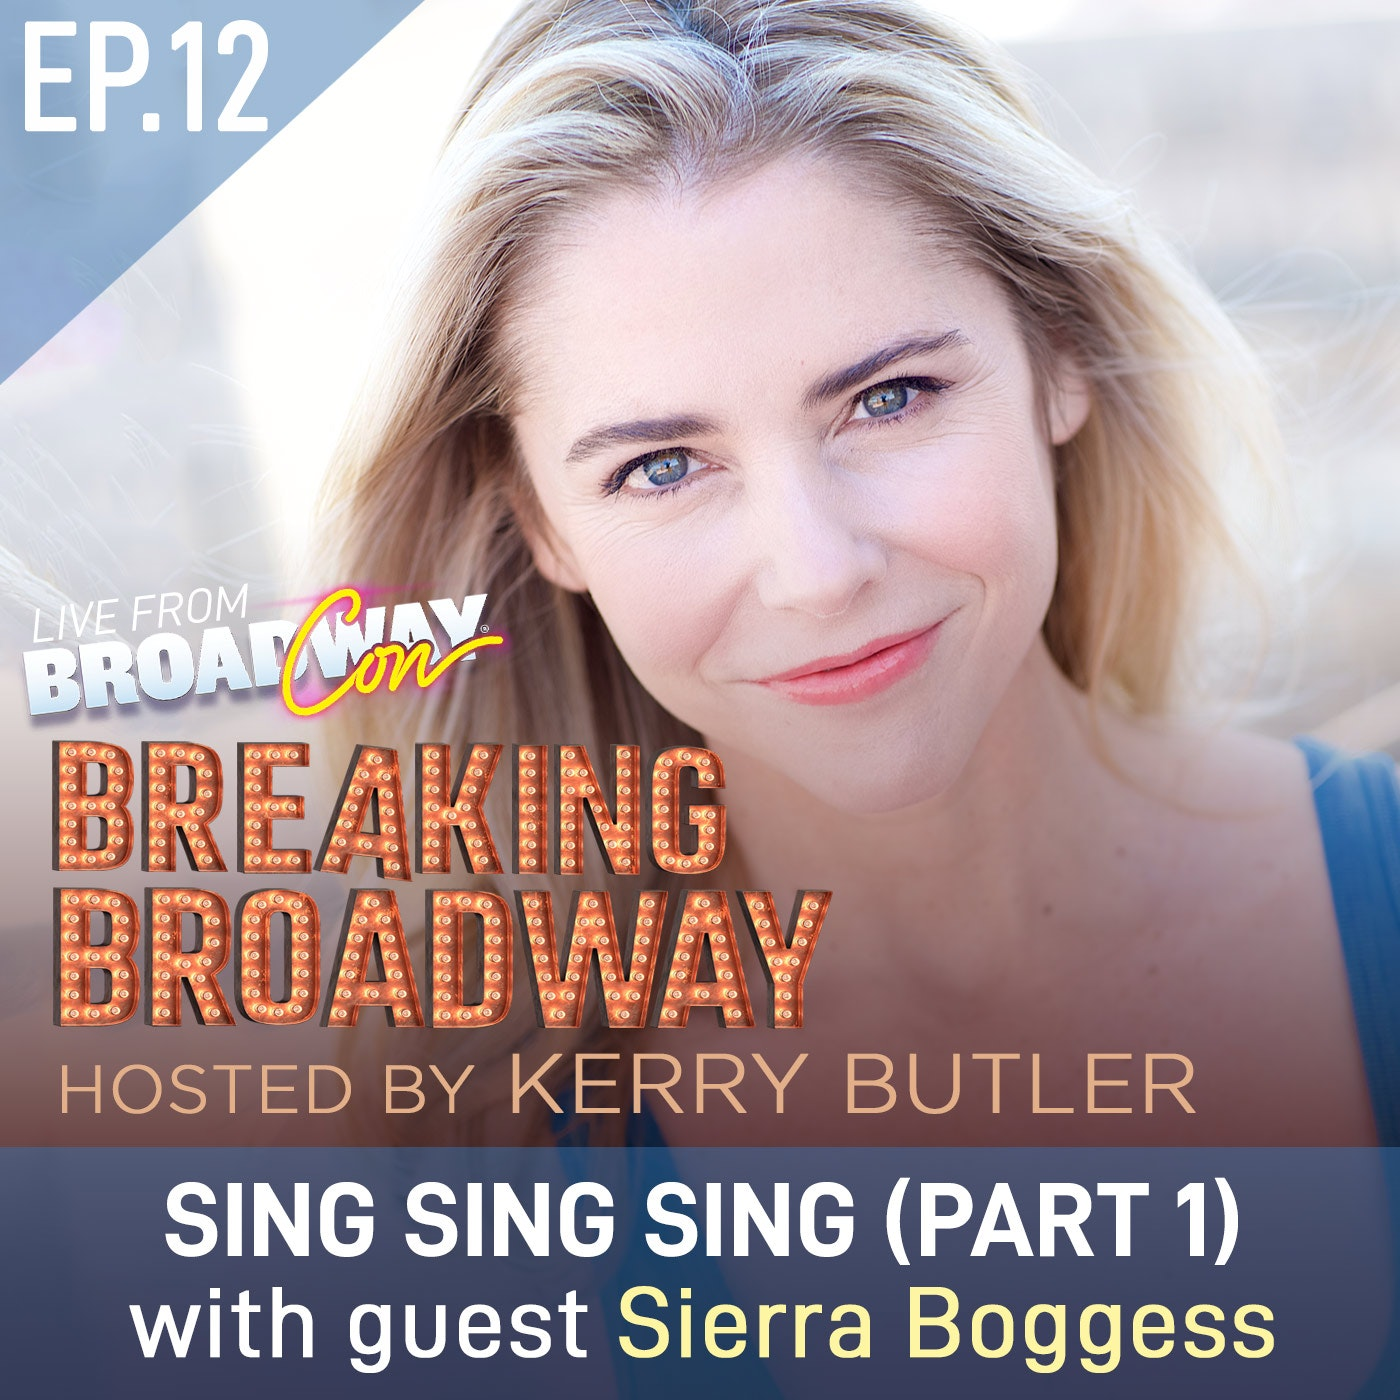 Ep12 - SING SING SING part 1, with Sierra Boggess (LIVE from BroadwayCon 2020)